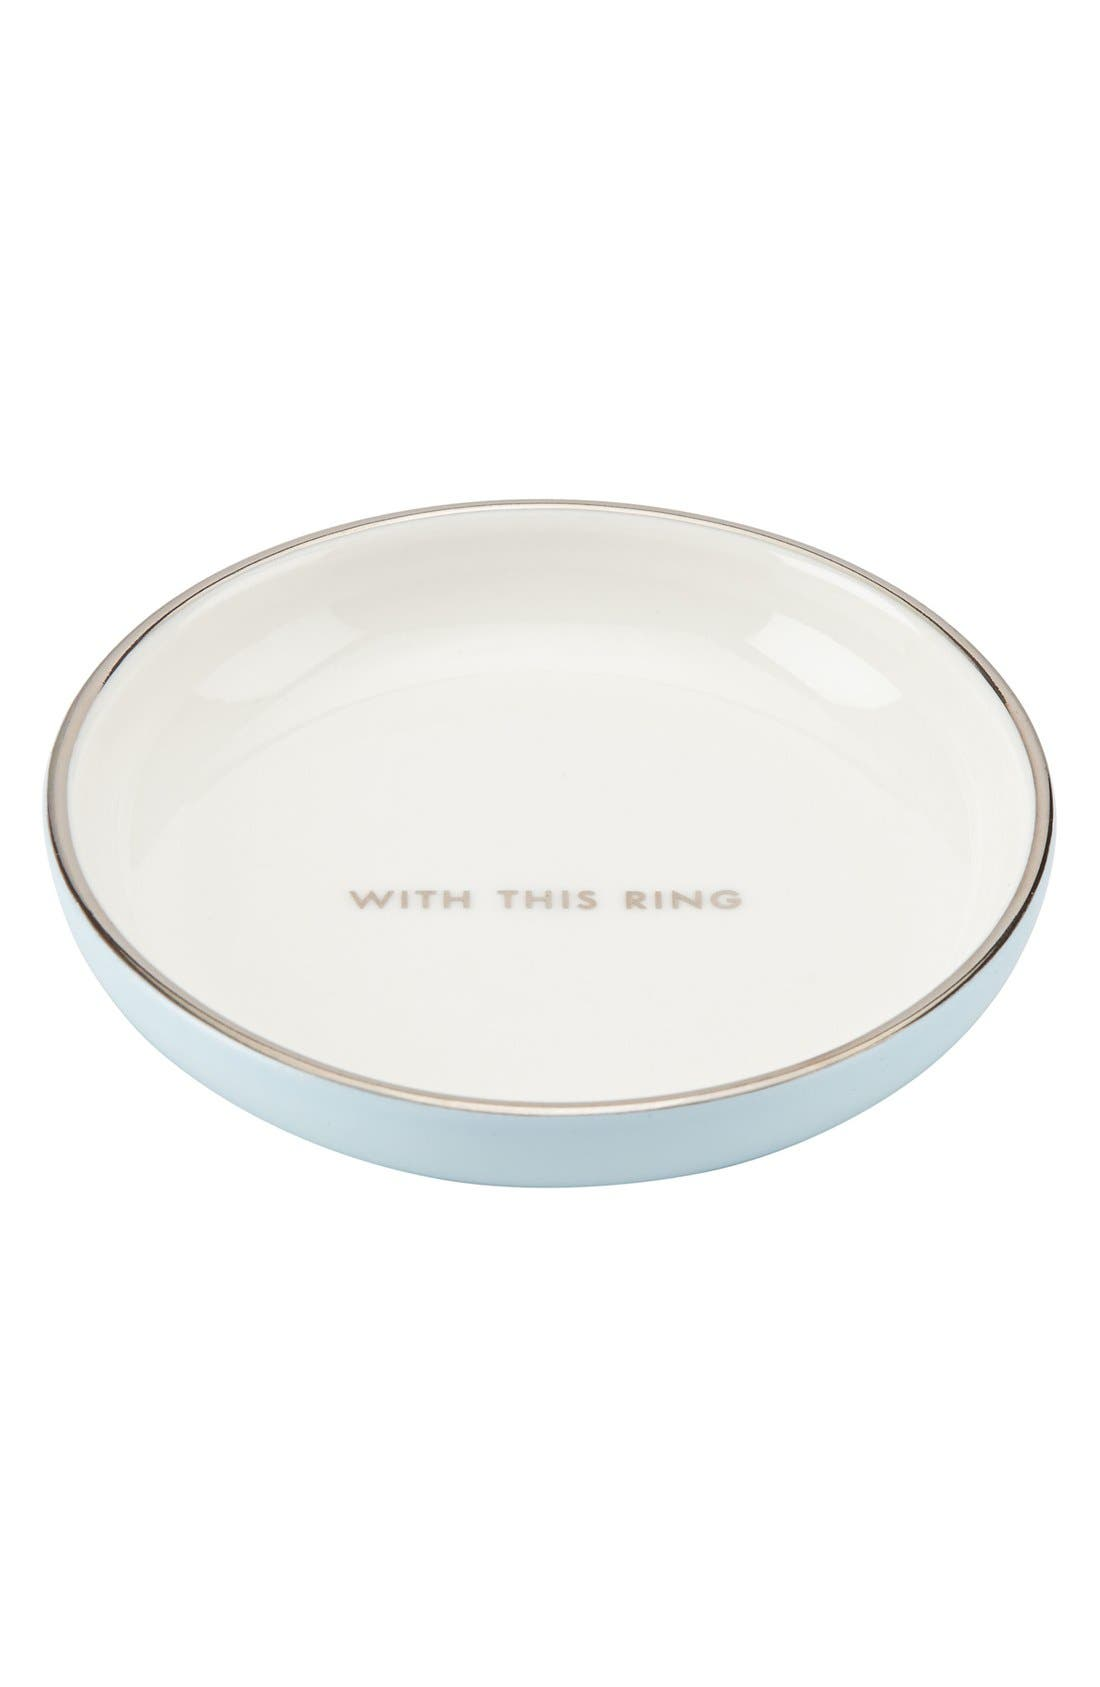 Main Image - kate spade 'take the cake' ring dish